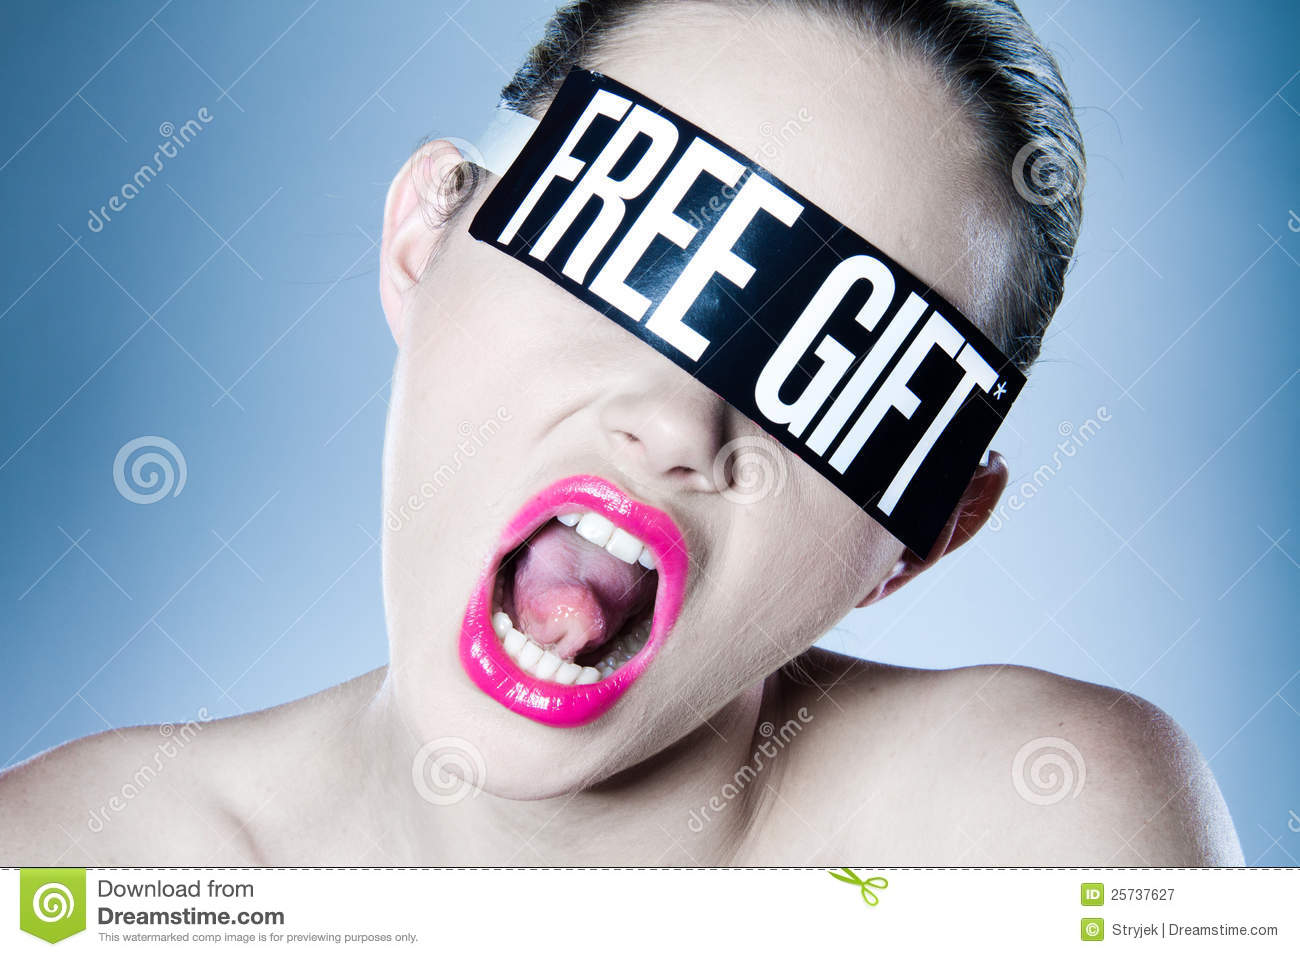 Woman with free gift offer